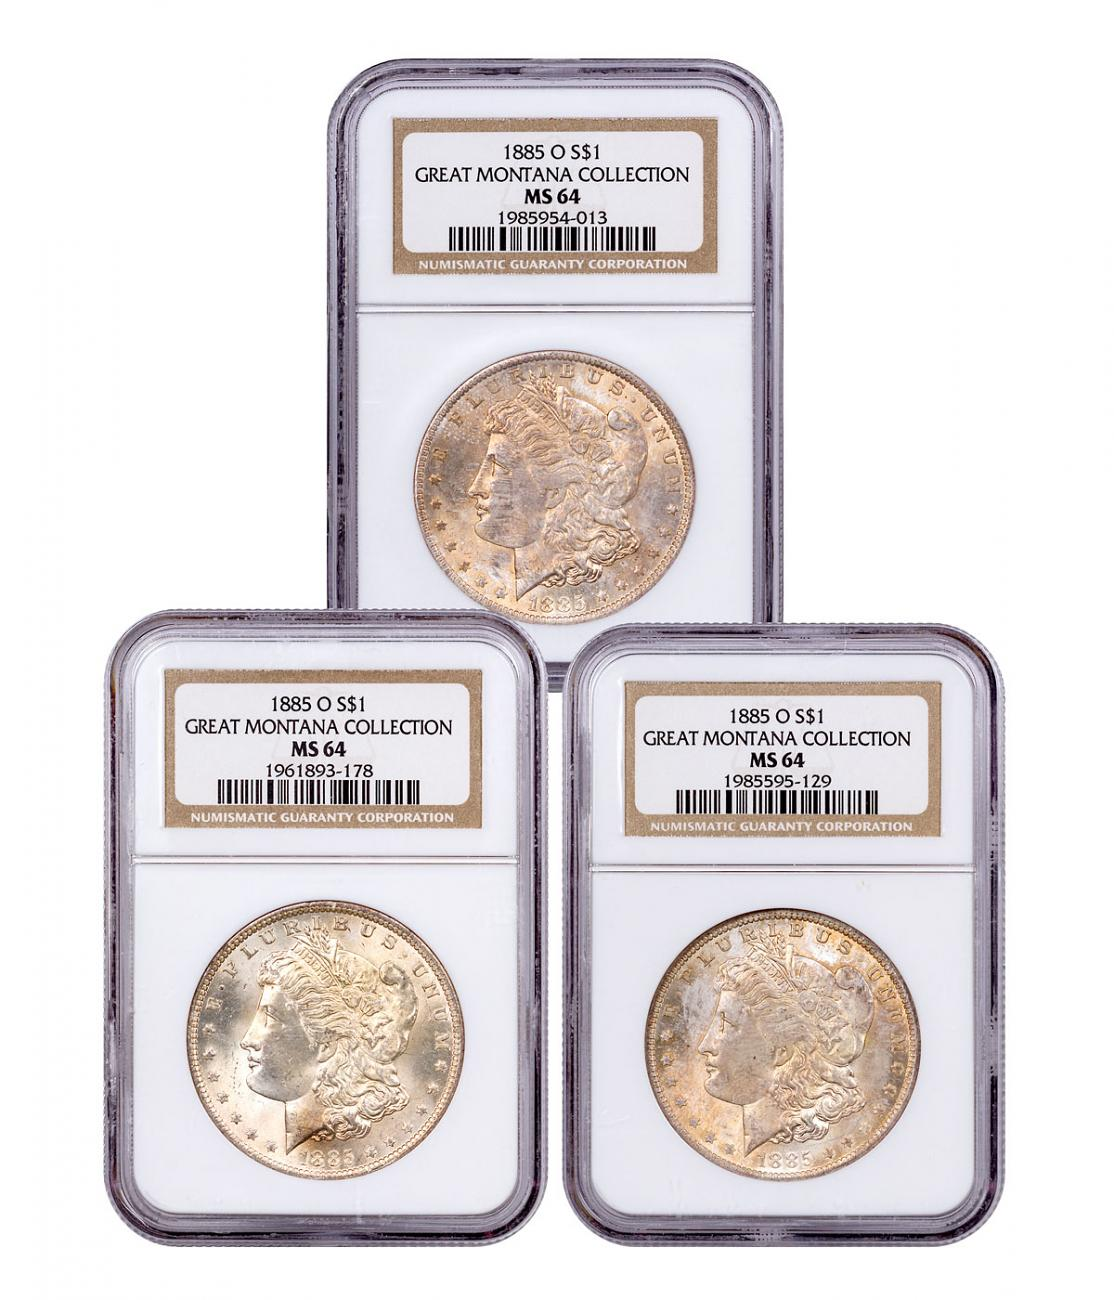 3-Coin Set - 1885-O Morgan Silver Dollar From the Great Montana Collection NGC MS64 Toned CPCR 4013